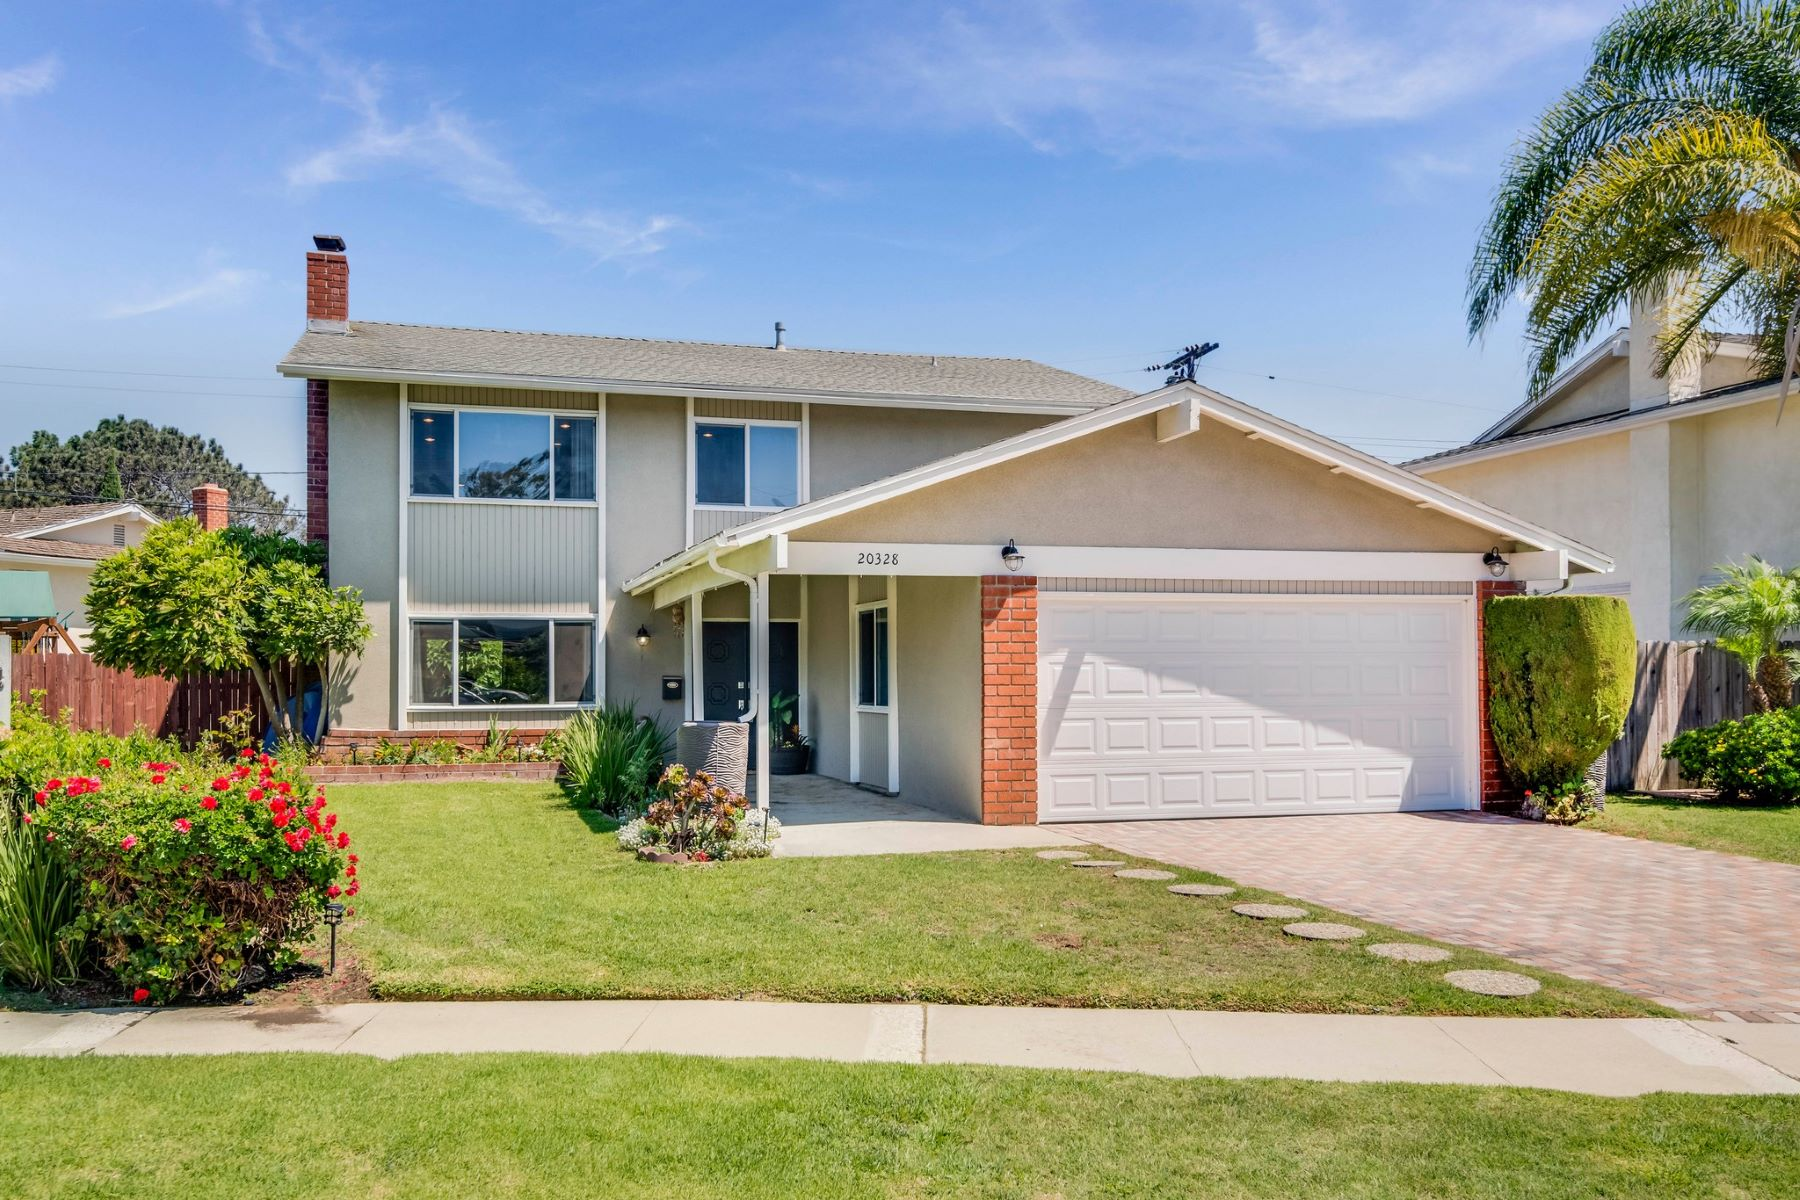 Single Family Home for Sale at 20328 Roslin Avenue Torrance, California 90503 United States